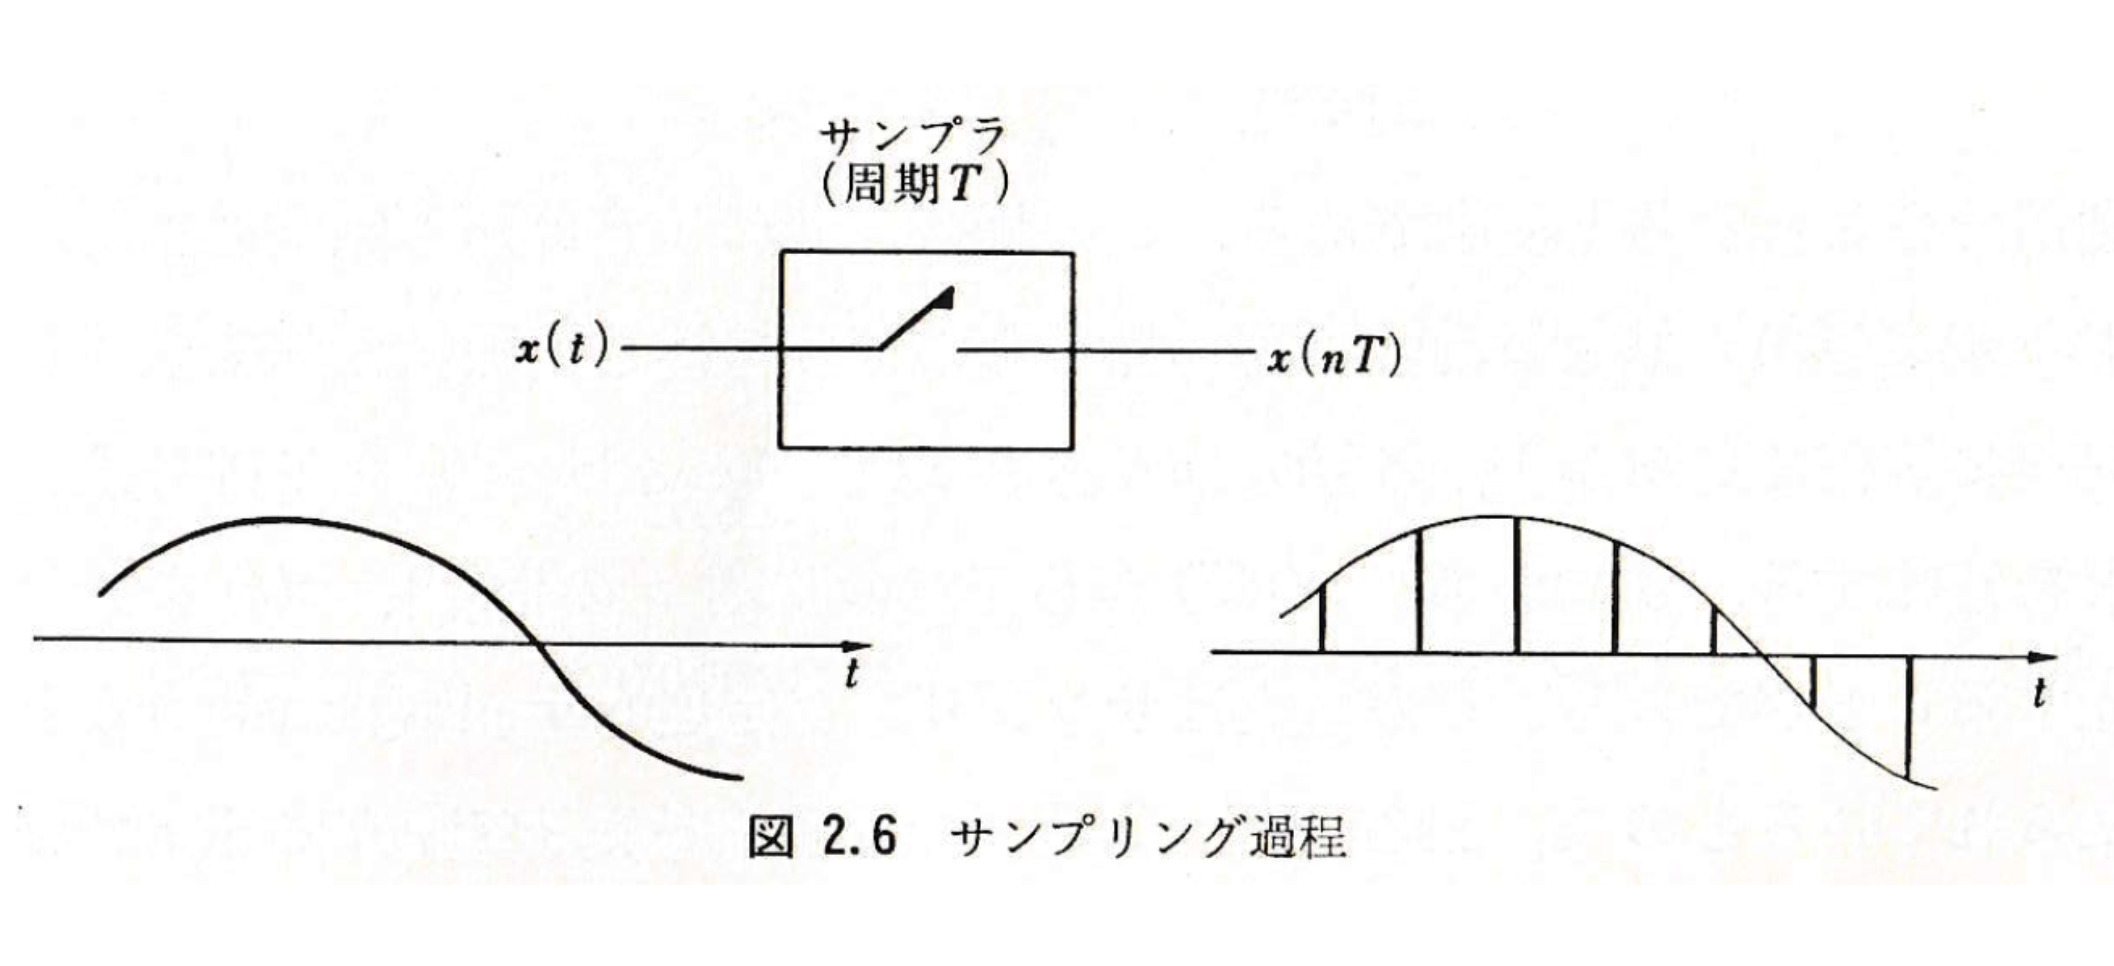 fig2-6